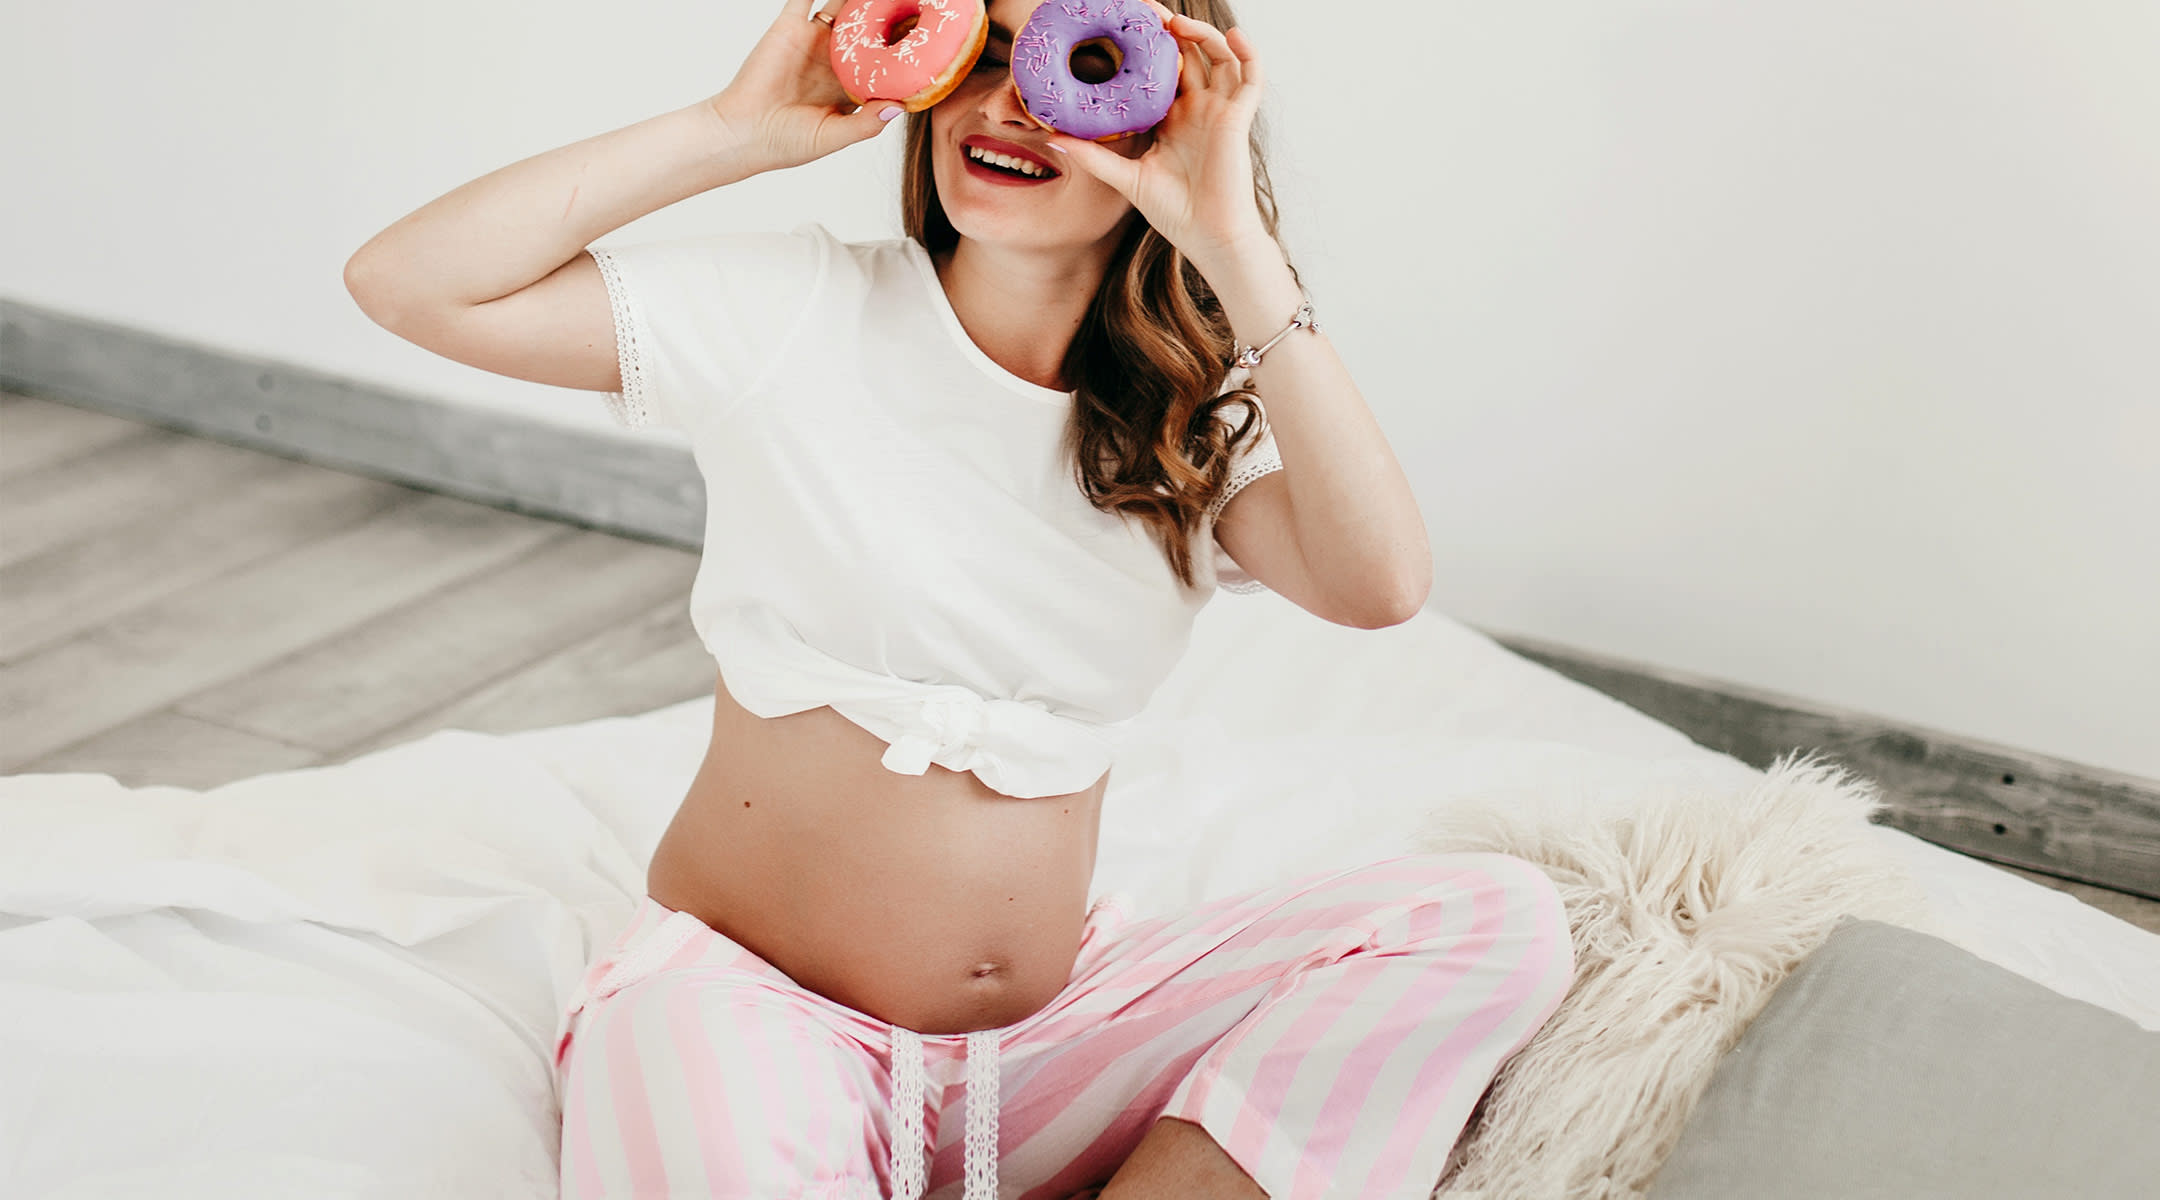 pregnant woman laughing and holding doughnuts up to her eyes